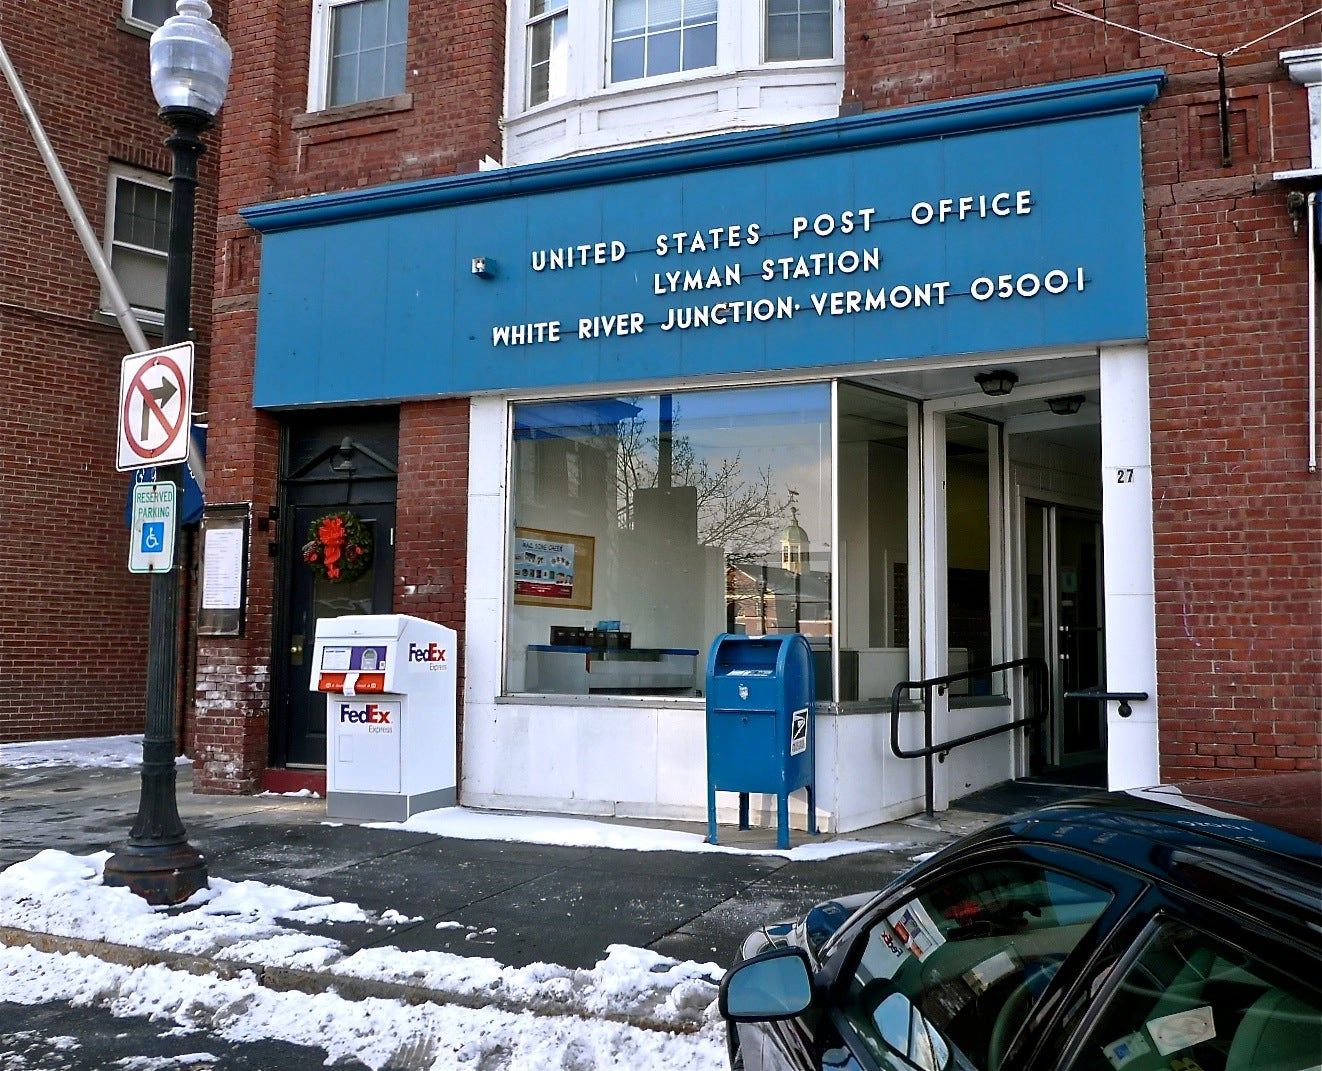 The White River Junction, Vermont, Post Office